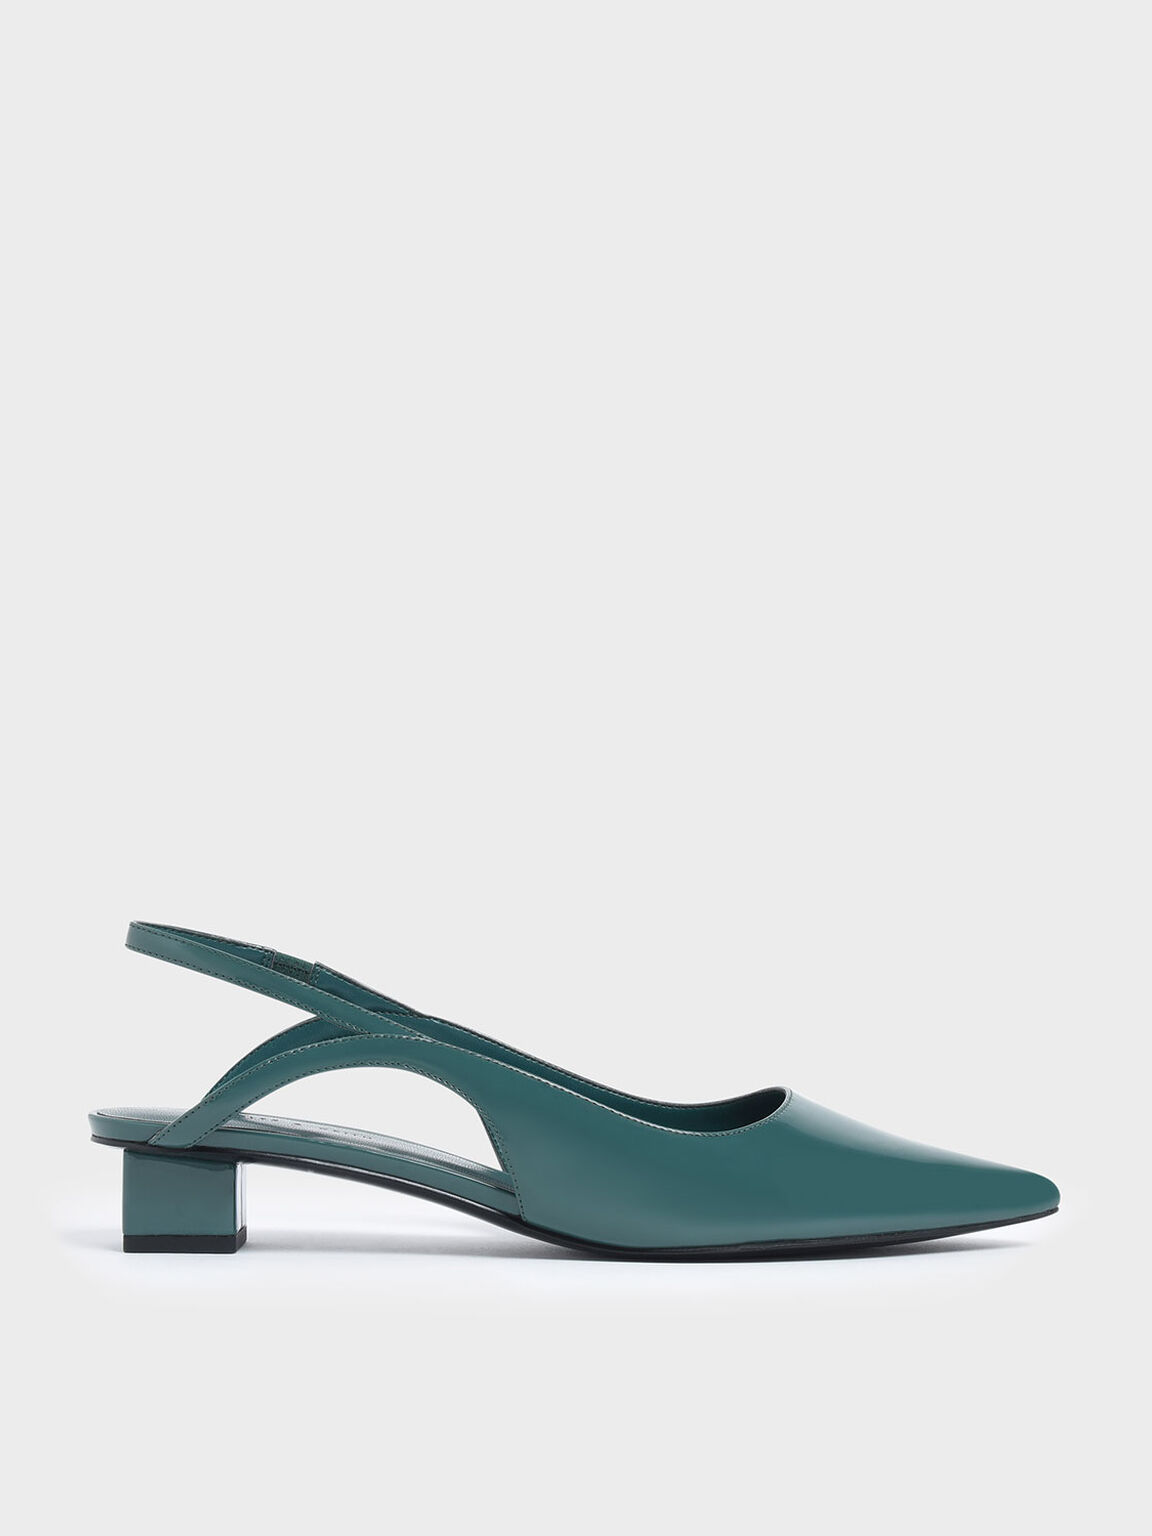 Low Block Heel Patent Slingback Pumps, Green, hi-res